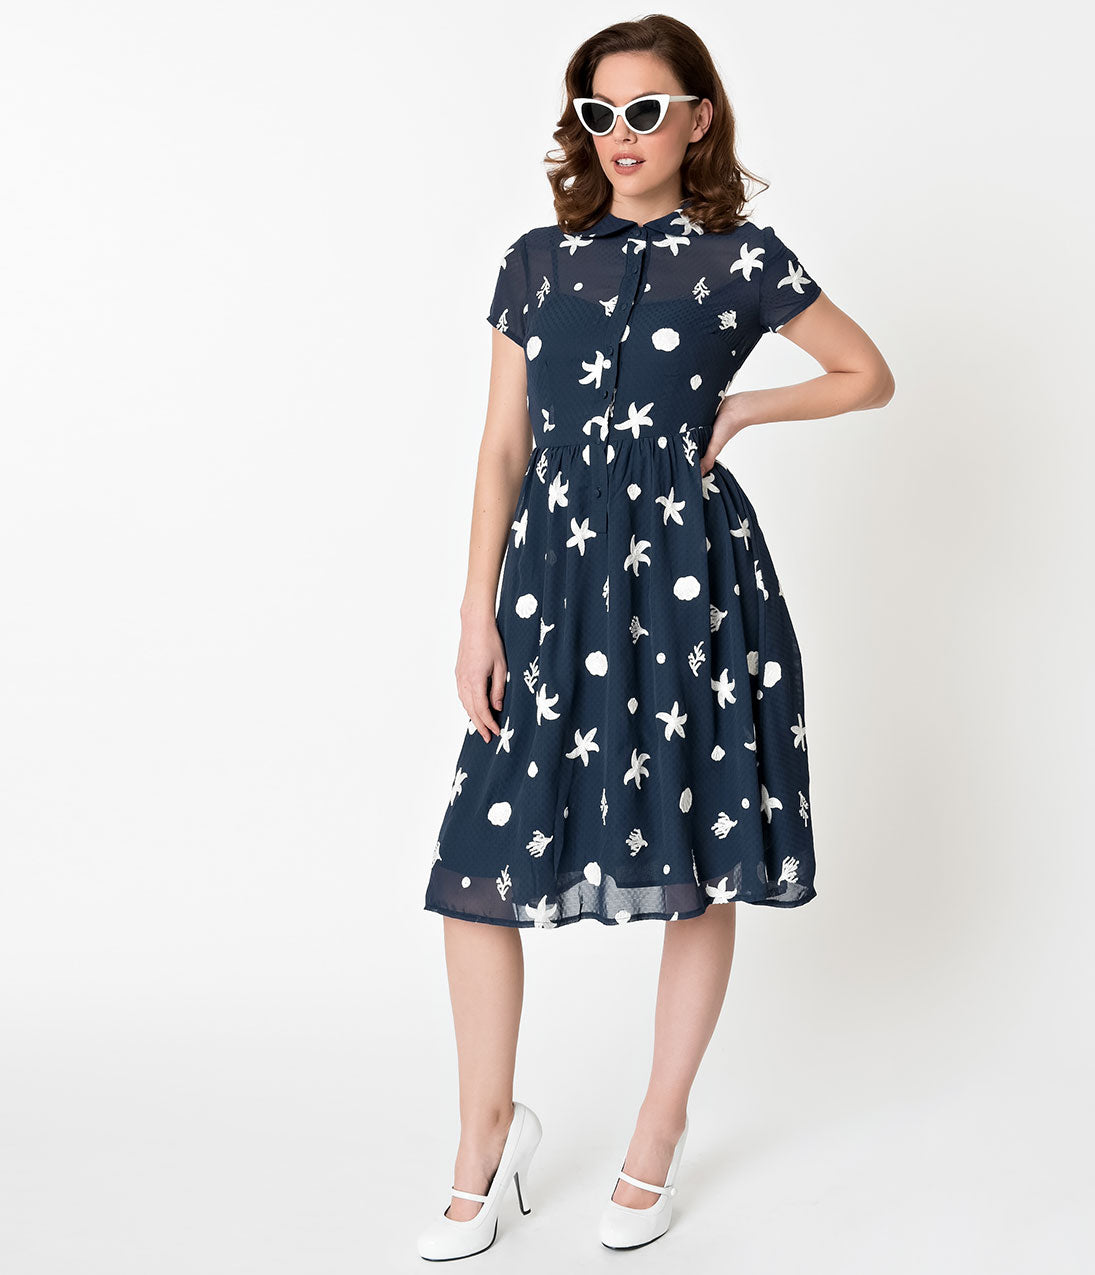 1940s Dresses | 40s Dress, Swing Dress Voodoo Vixen Navy Blue Under The Sea Embroidered Mary Swing Dress $48.00 AT vintagedancer.com